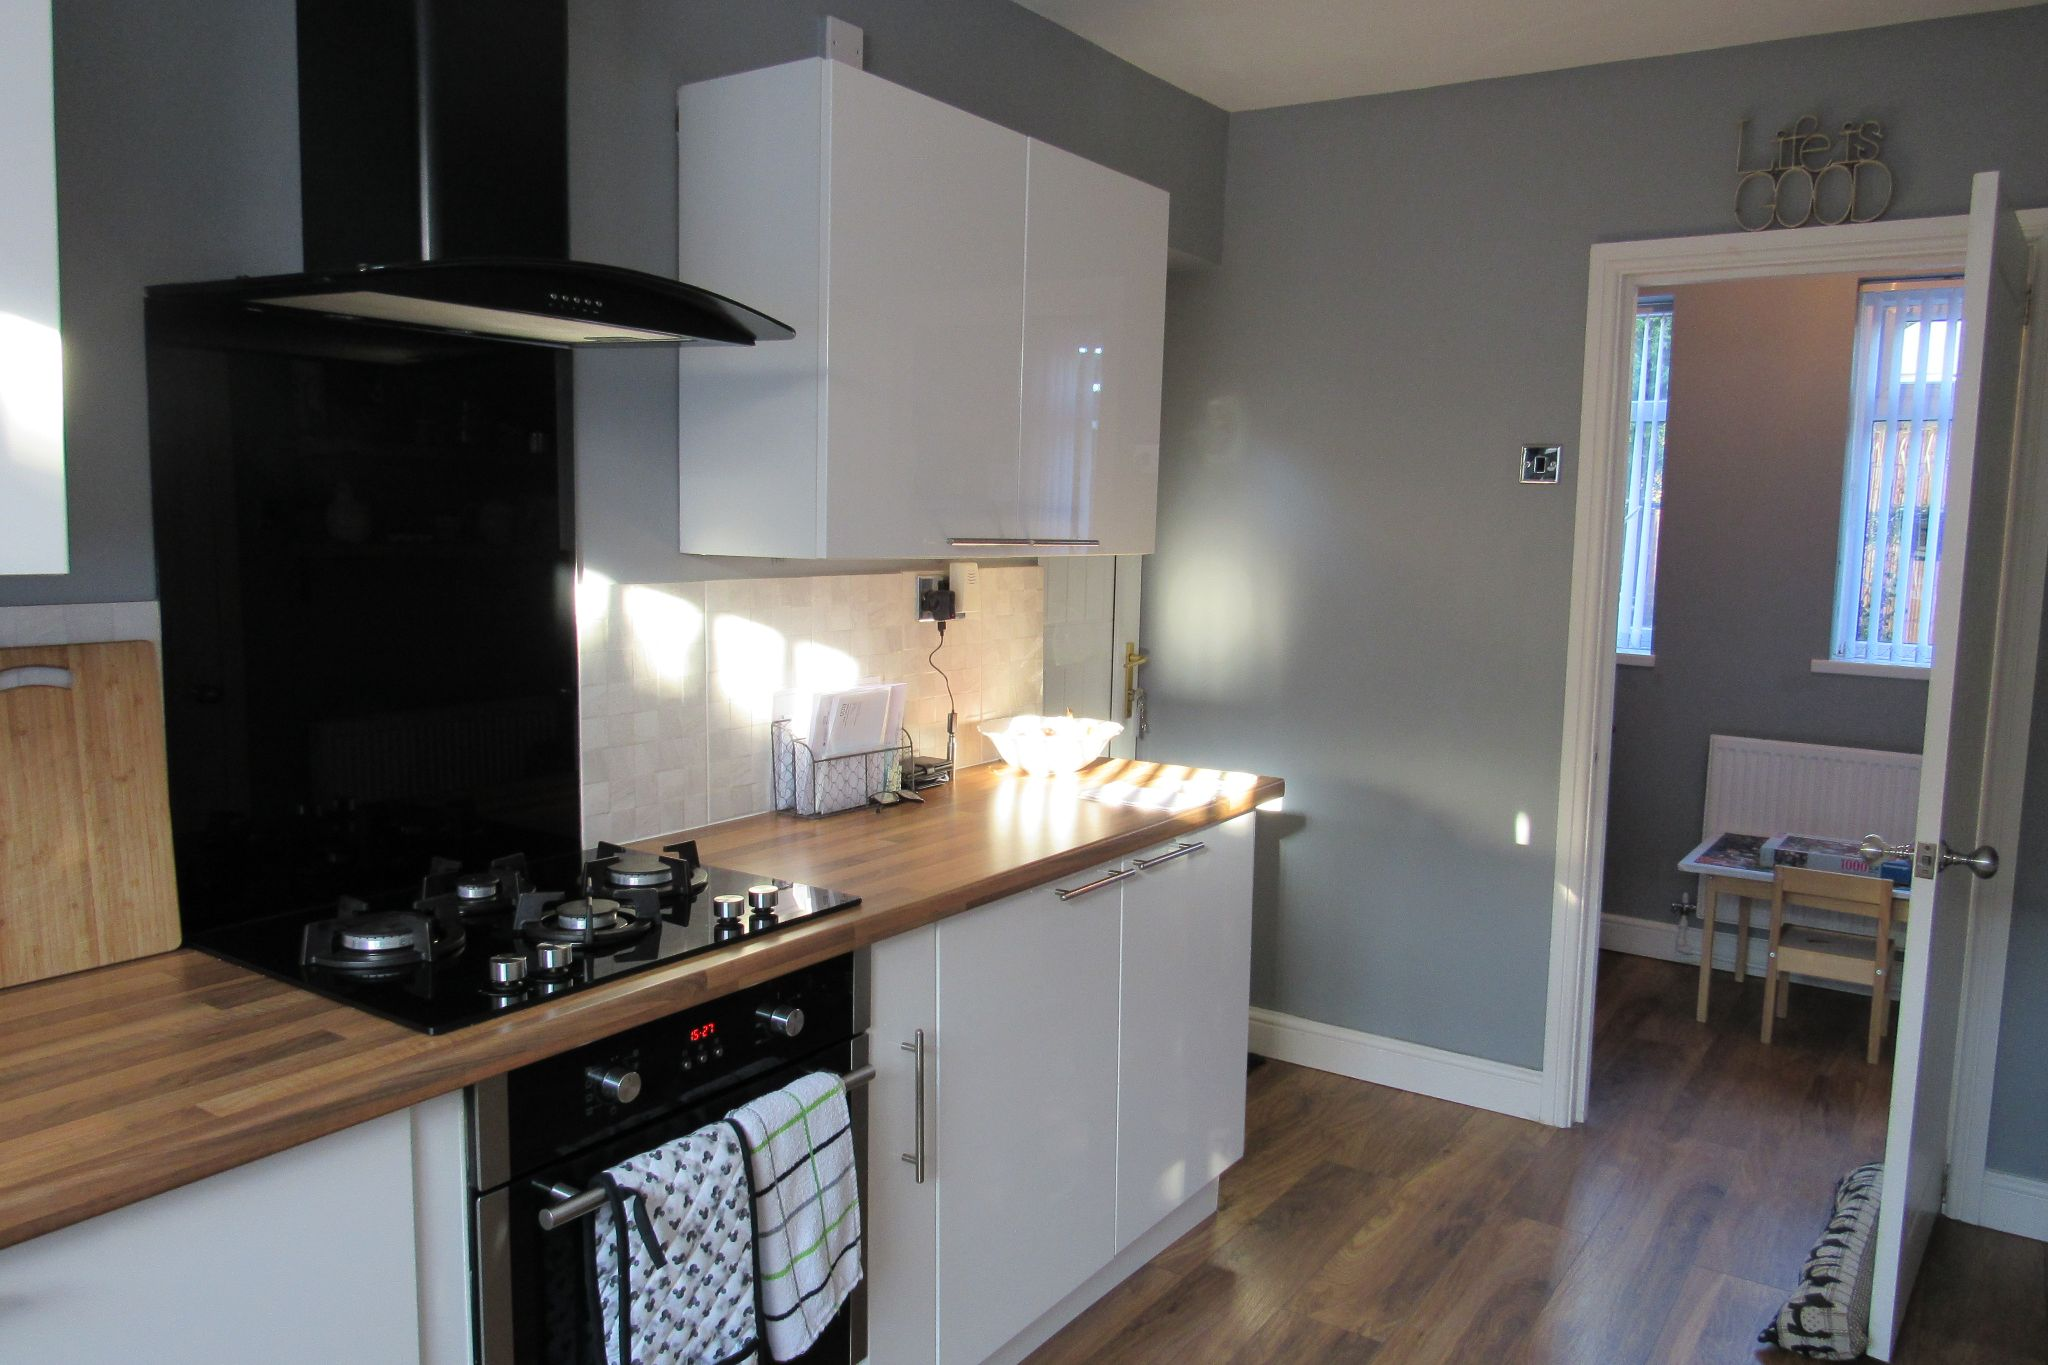 3 bedroom end terraced house SSTC in Manchester - Photograph 5.